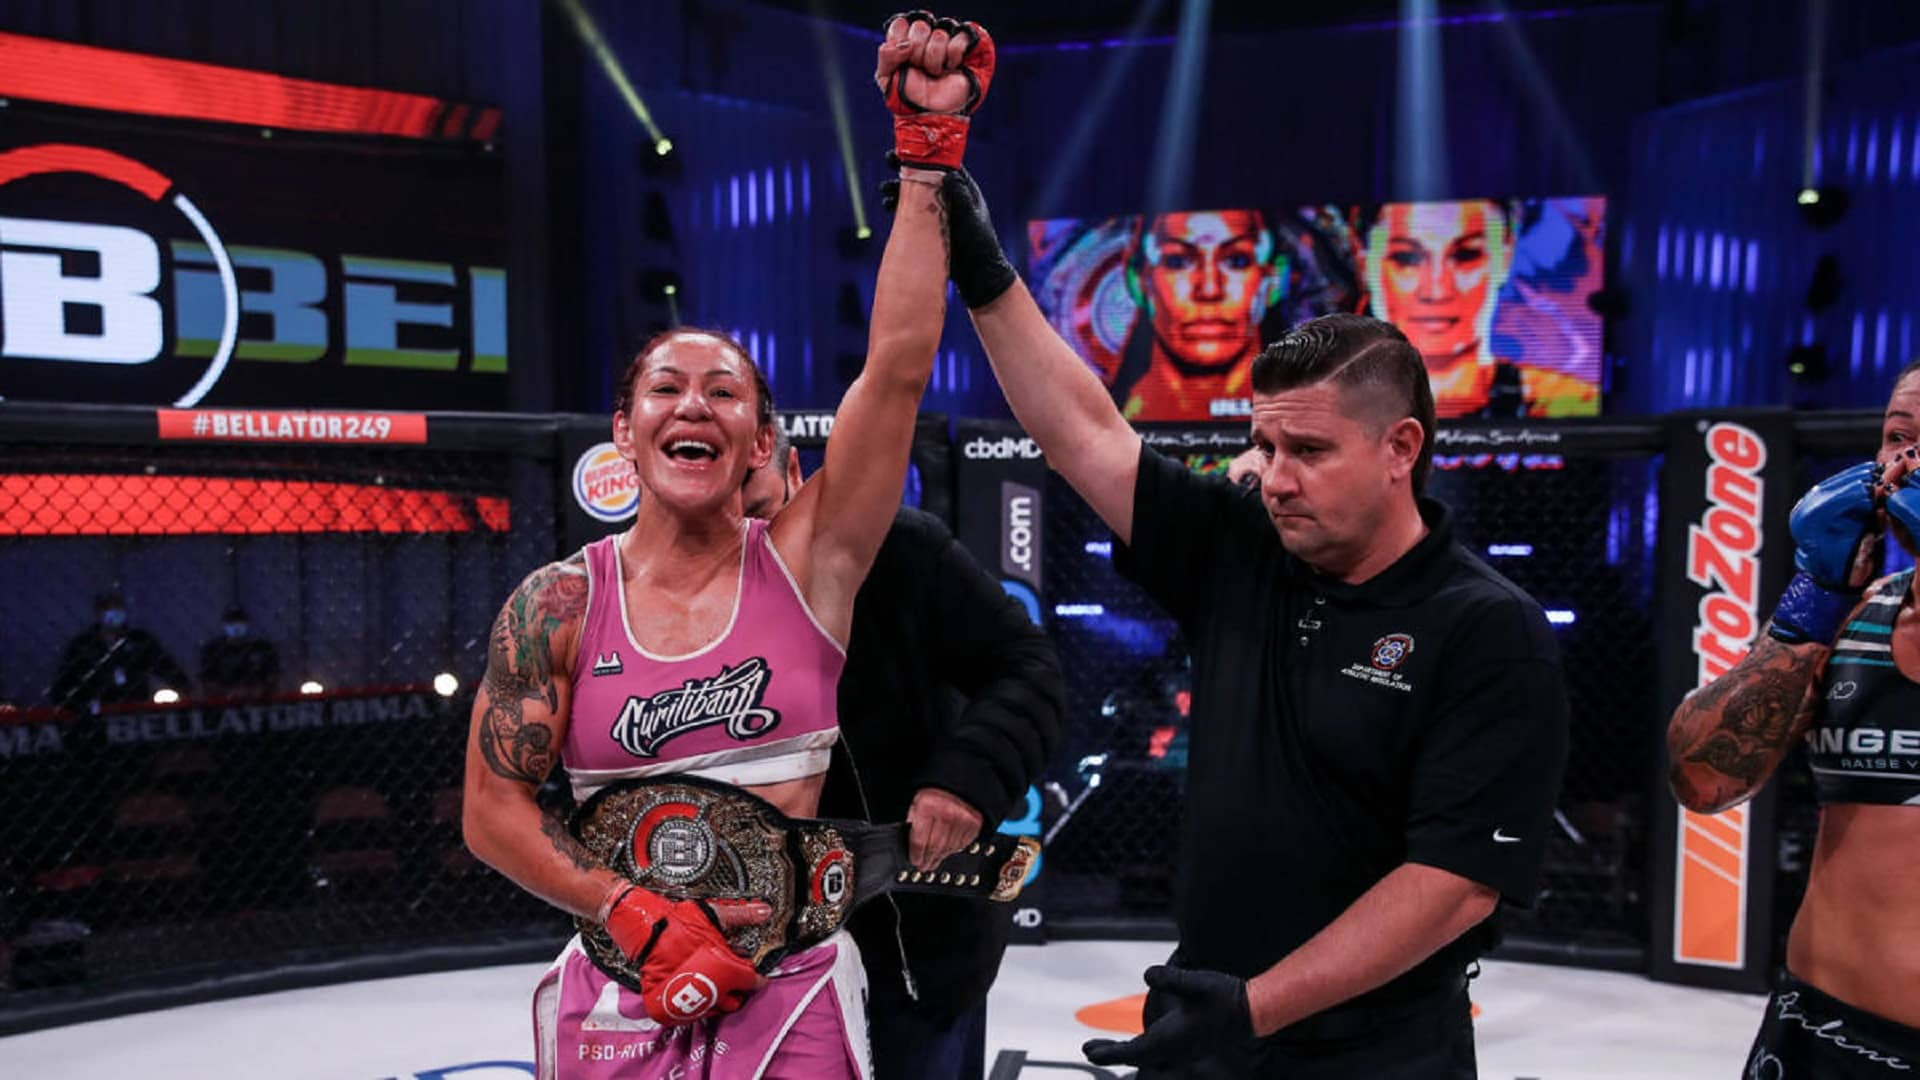 Bellator-249-Results-Cris-Cyborg-wins